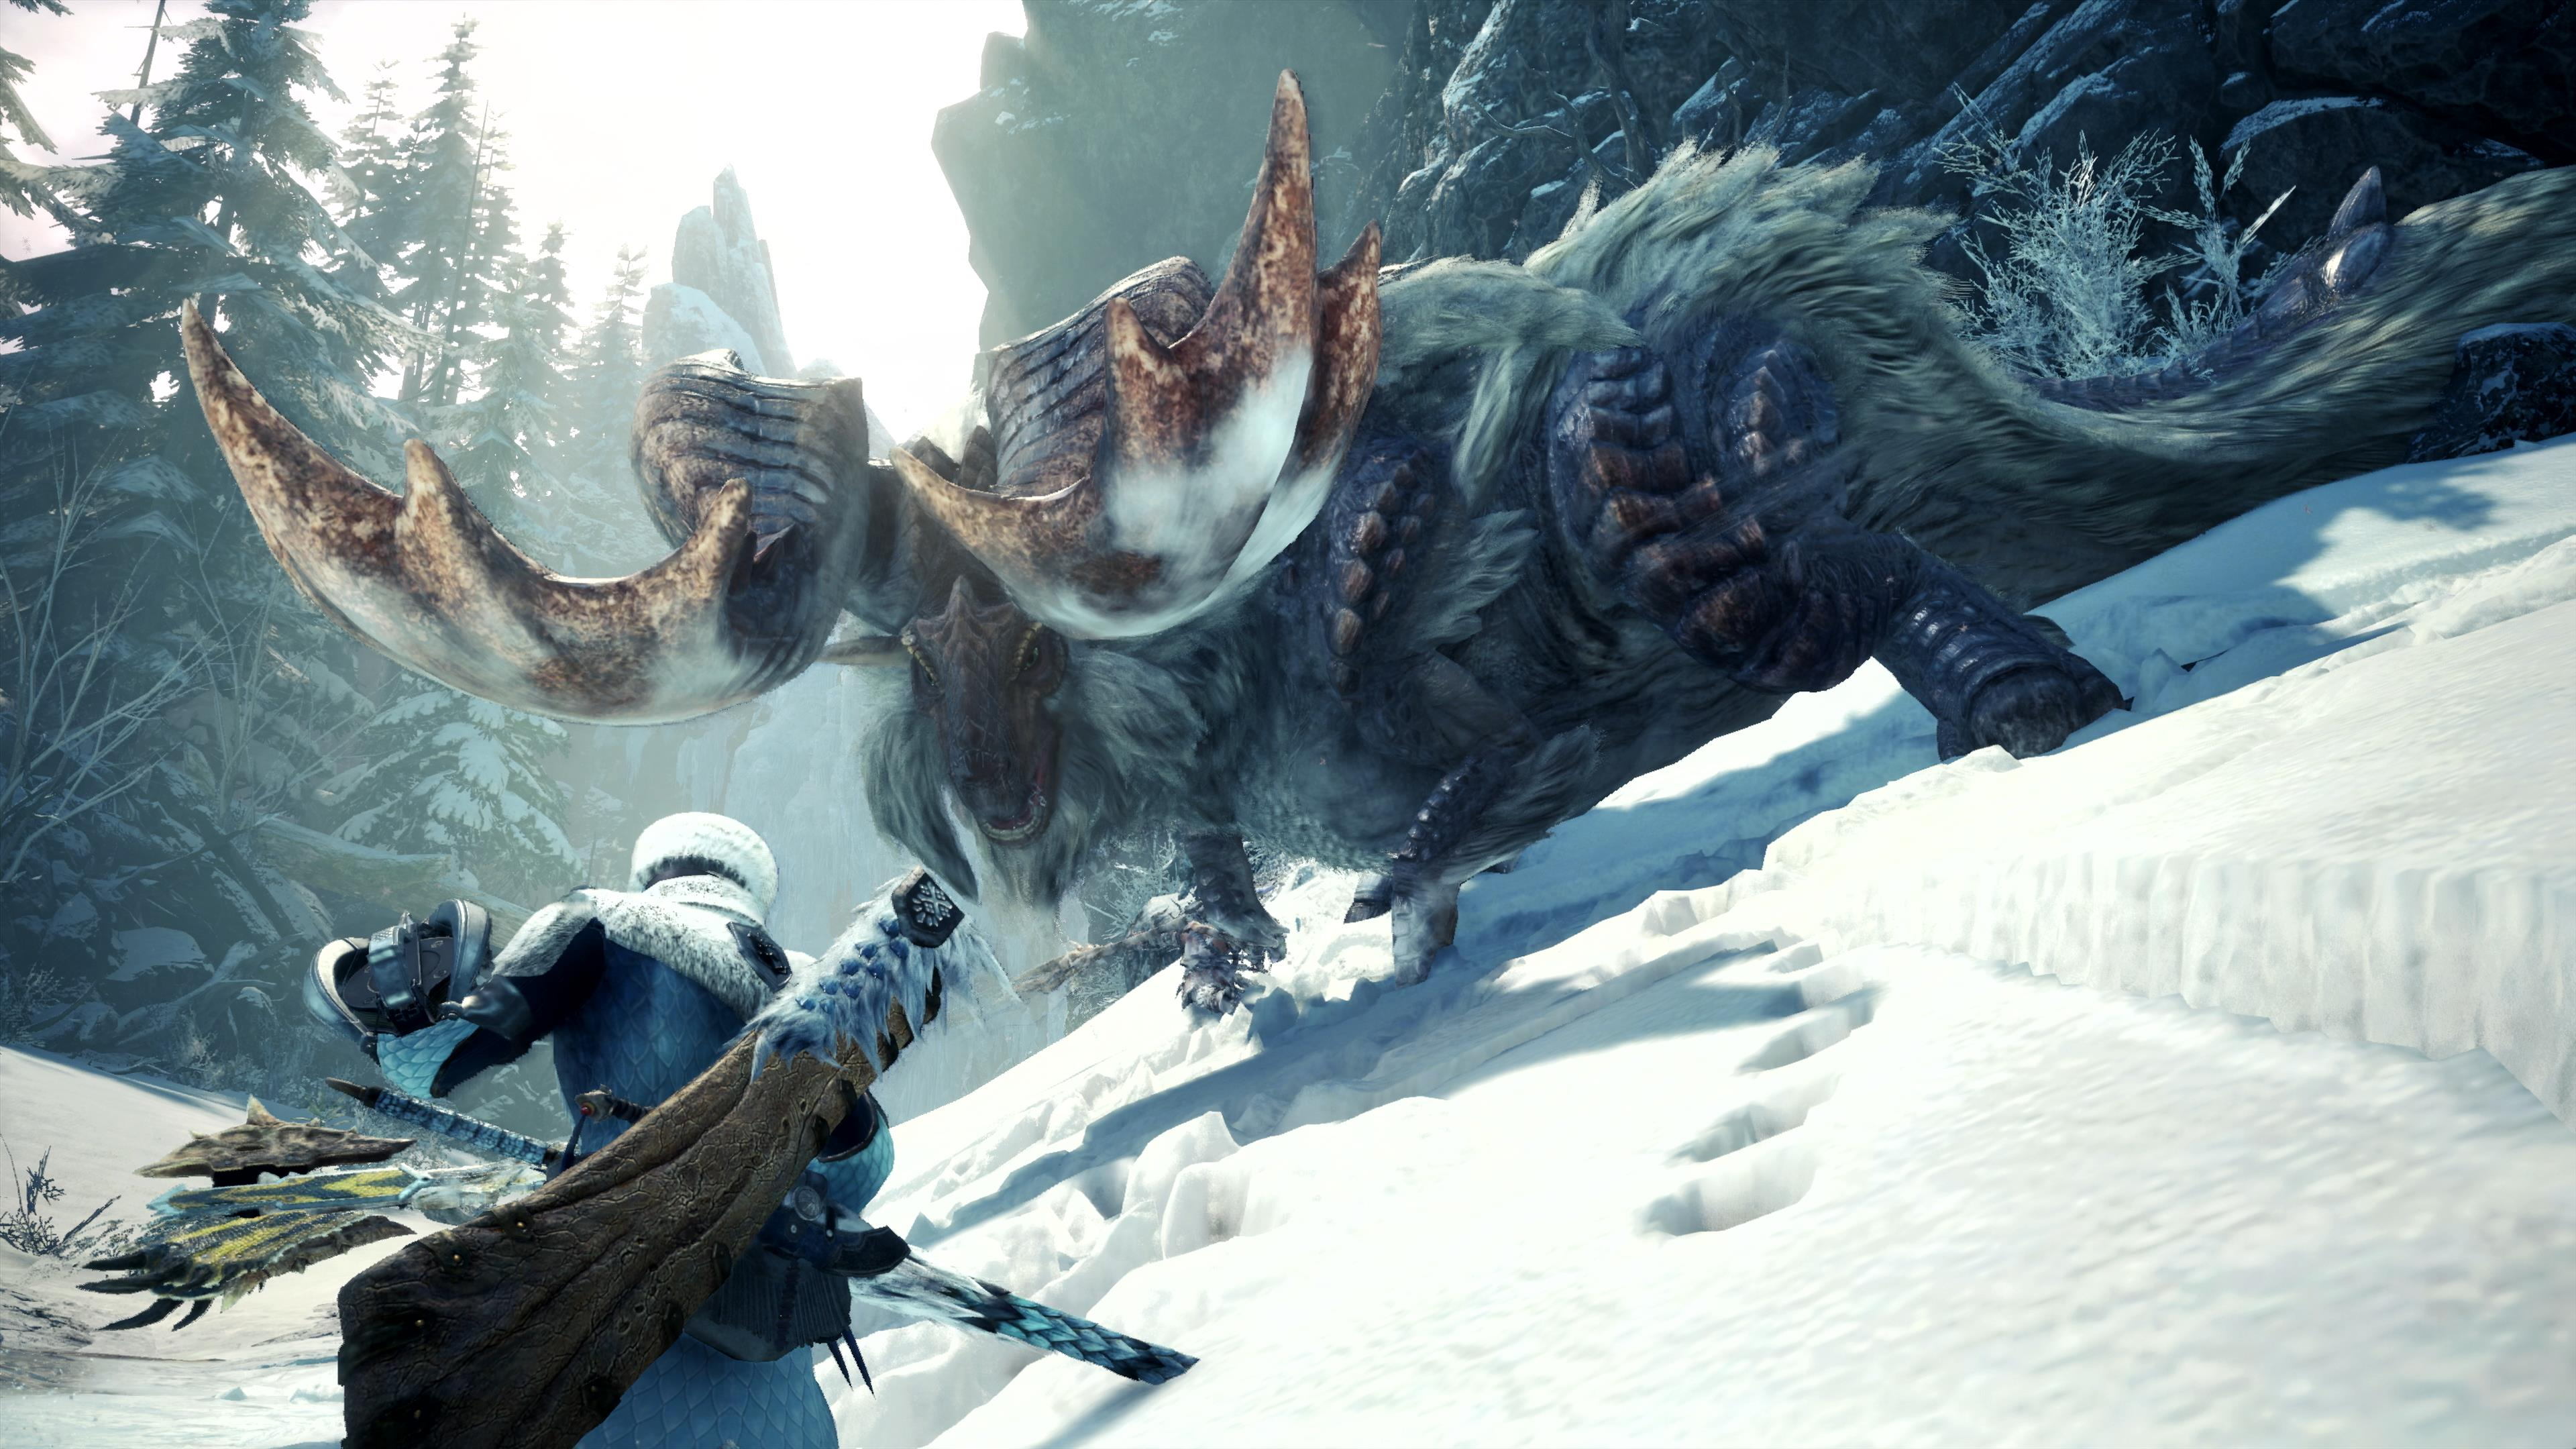 Monster Hunter World: Iceborne will be a bit easier if you mastered the base game, but will push challenge in endgame - VG247